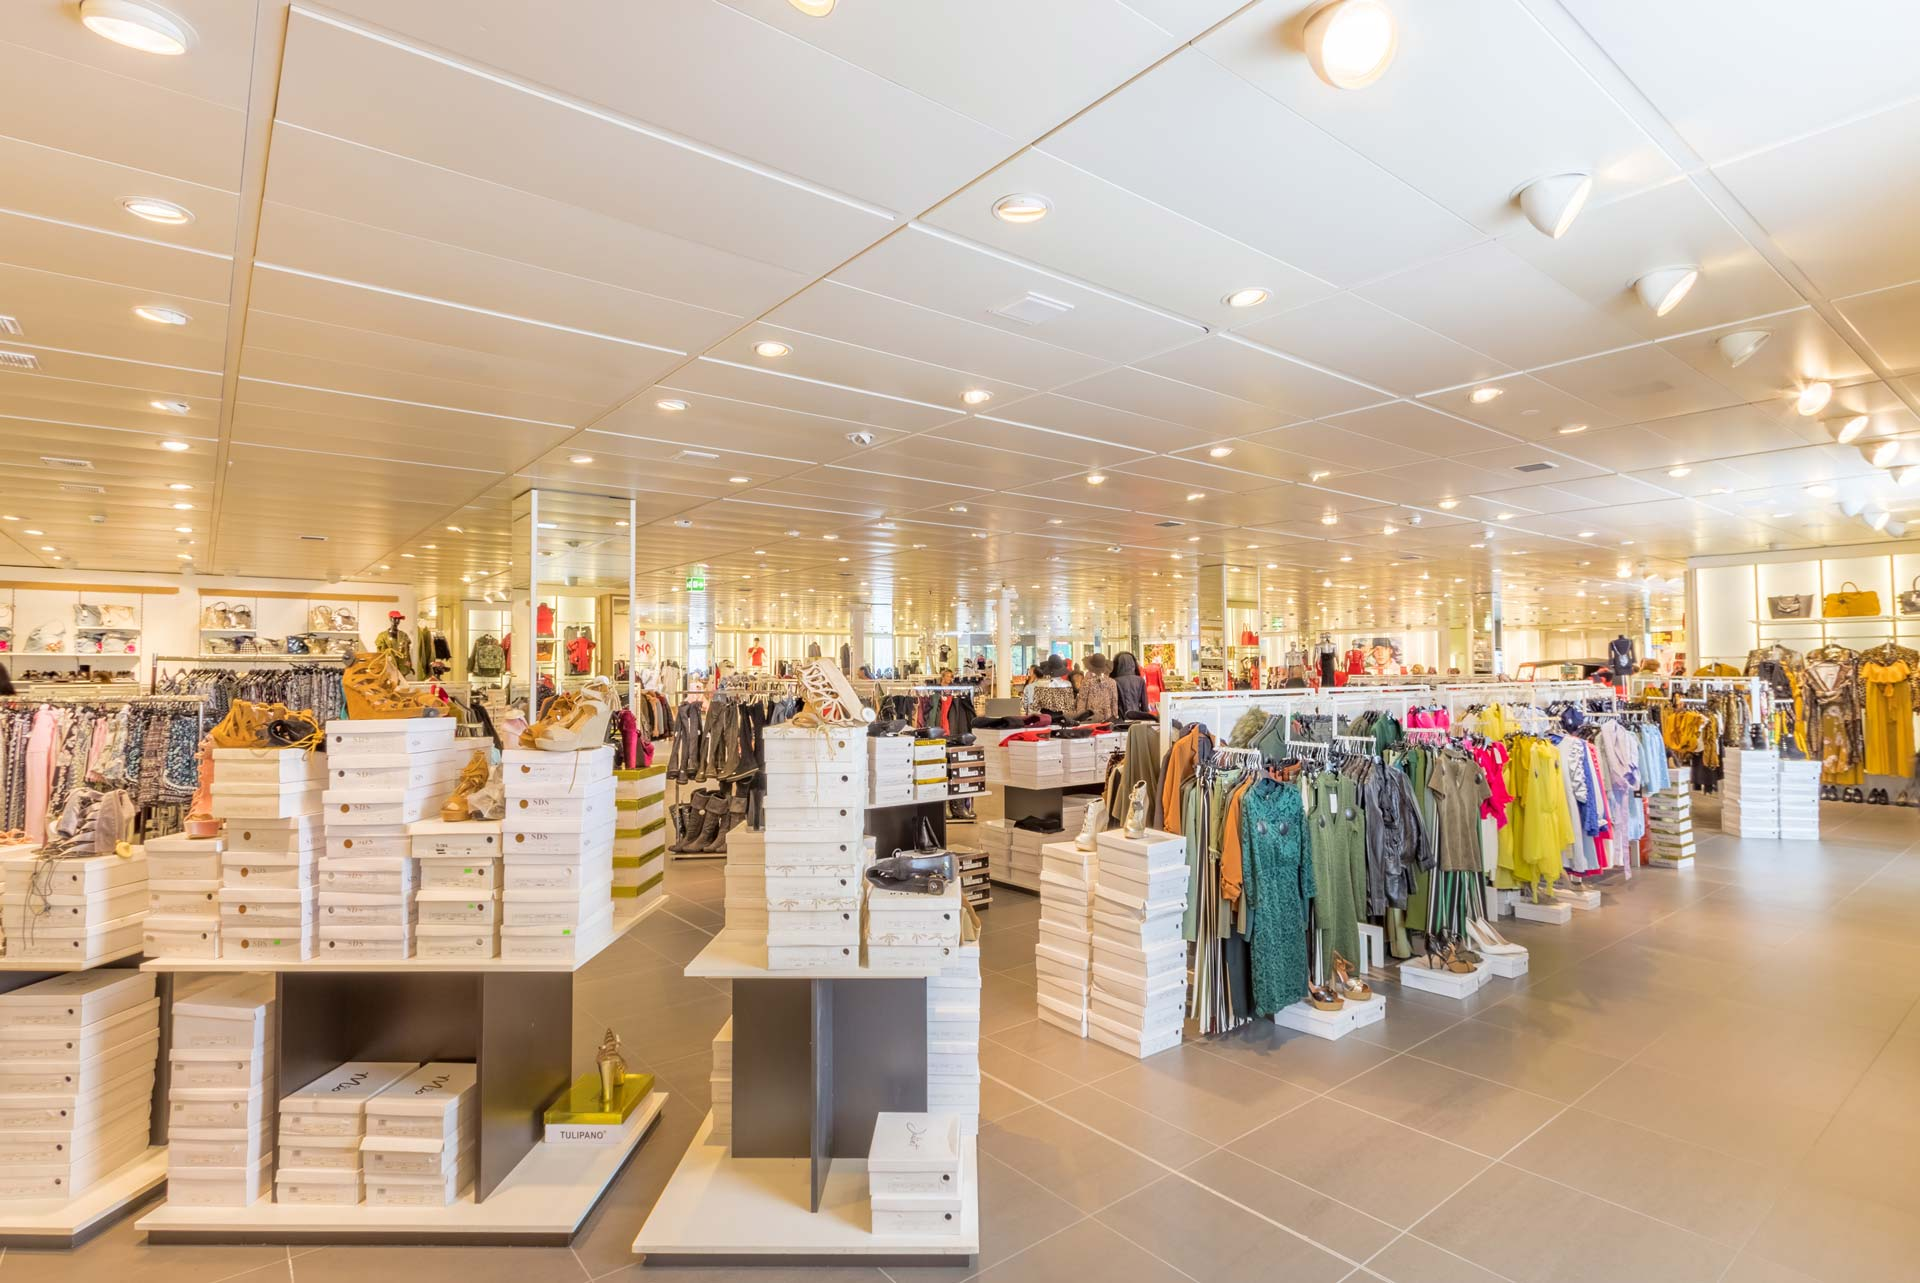 Video Analytics Can Help You Optimise the Store Layout